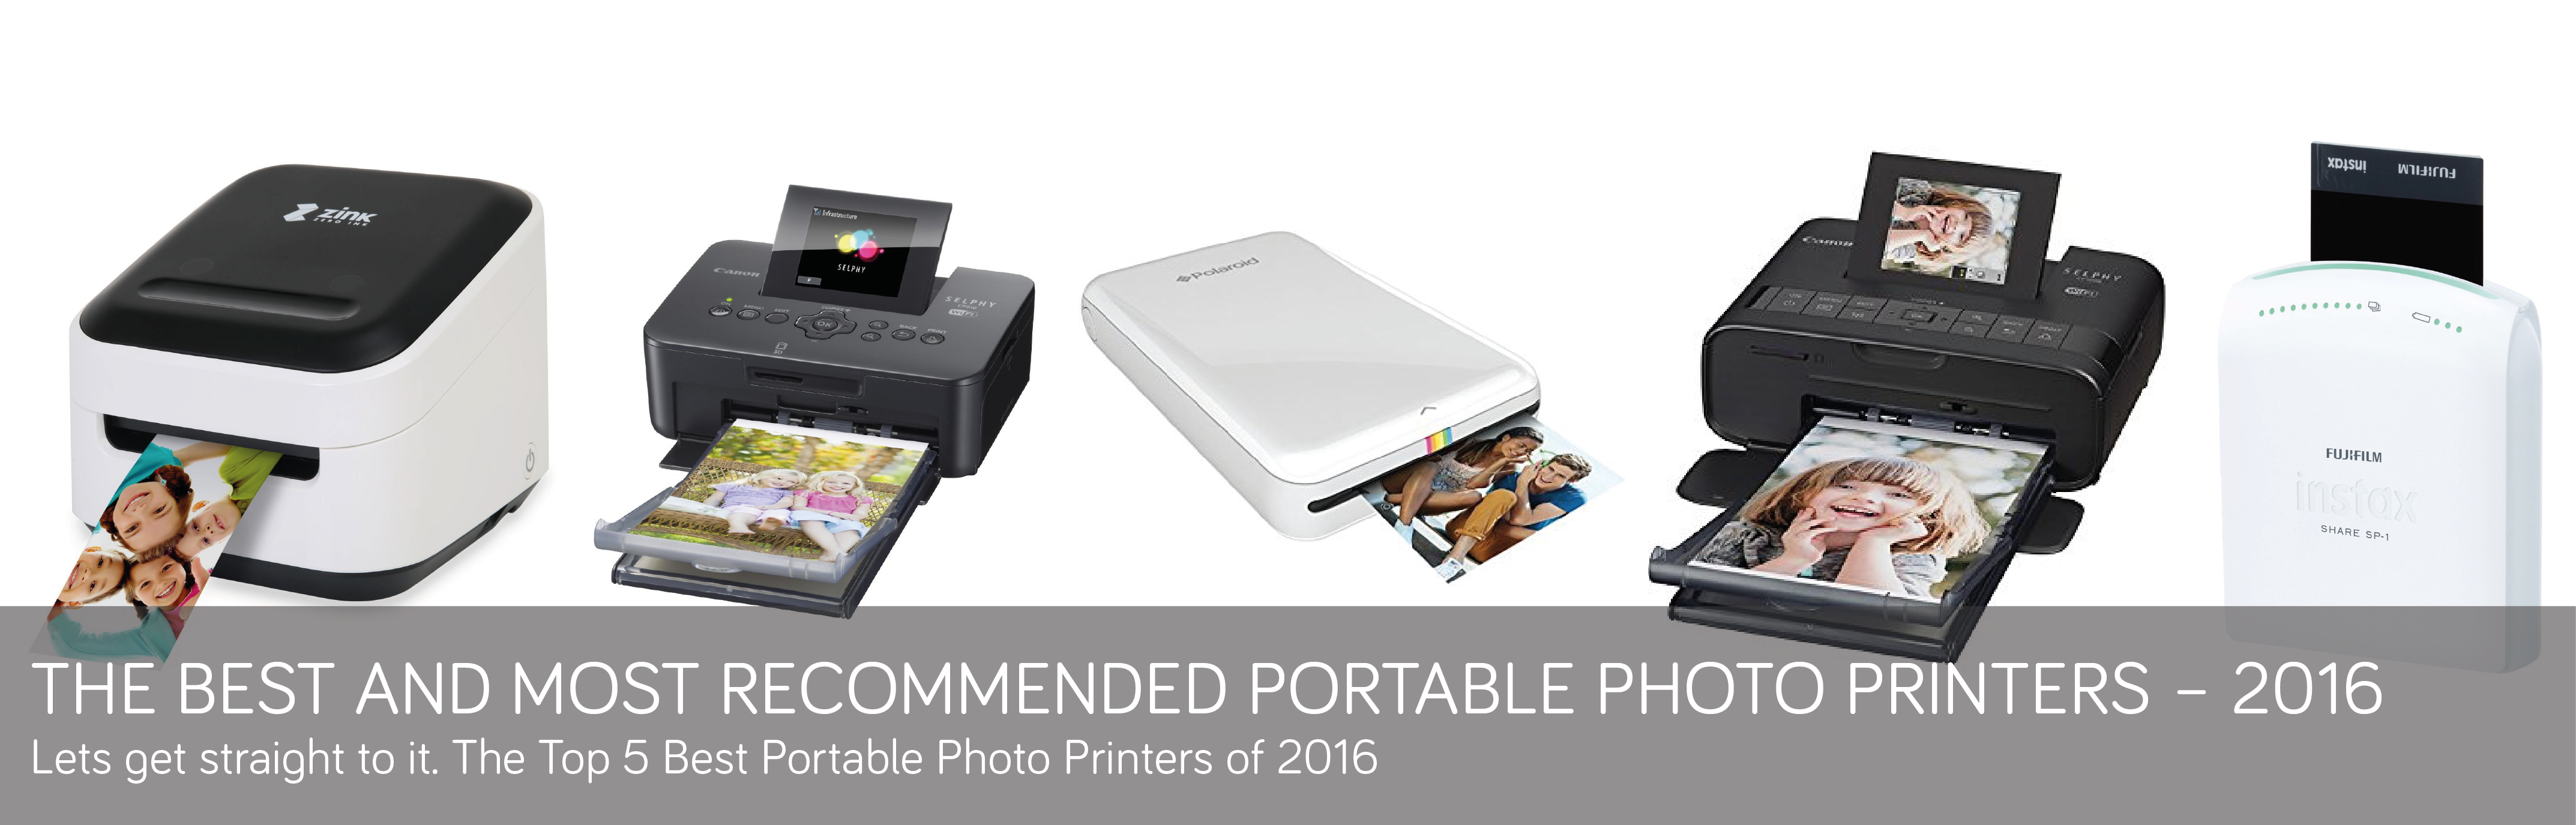 best portable printer 2016